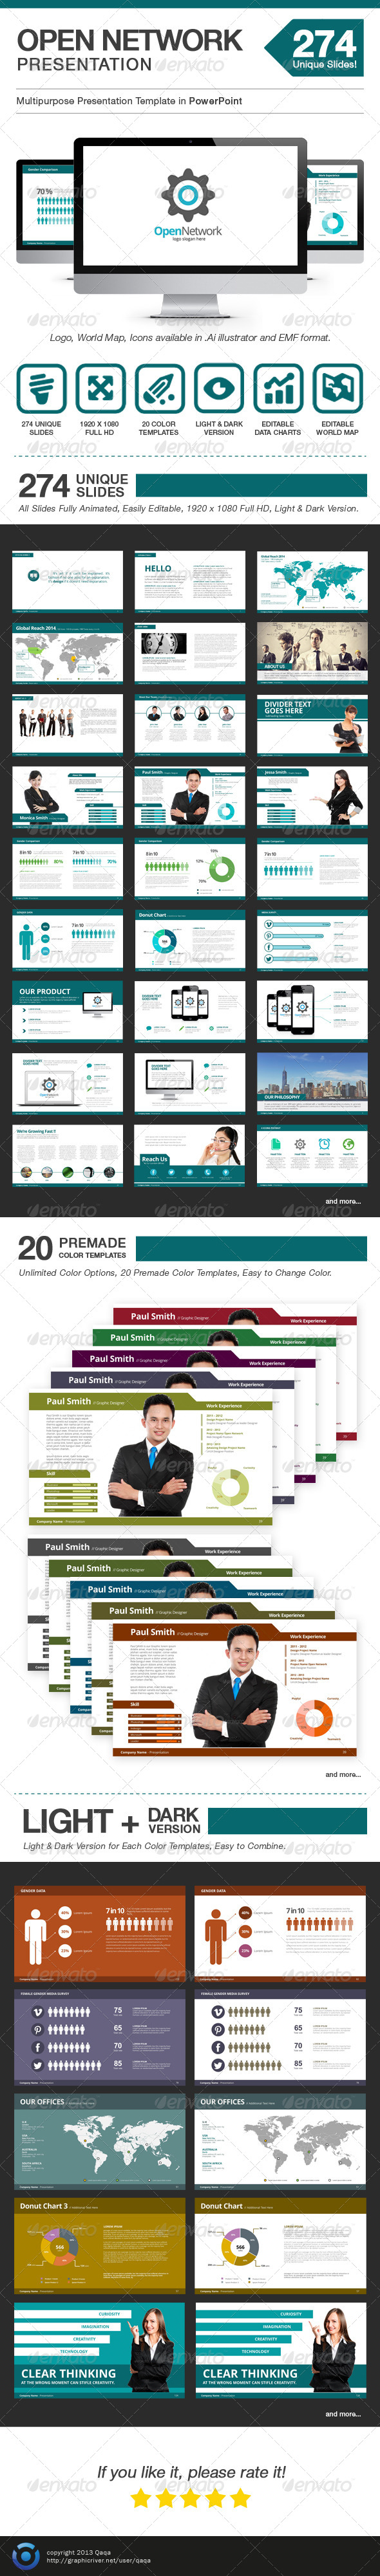 GraphicRiver Open Network Presentation Power Point Template 6485998